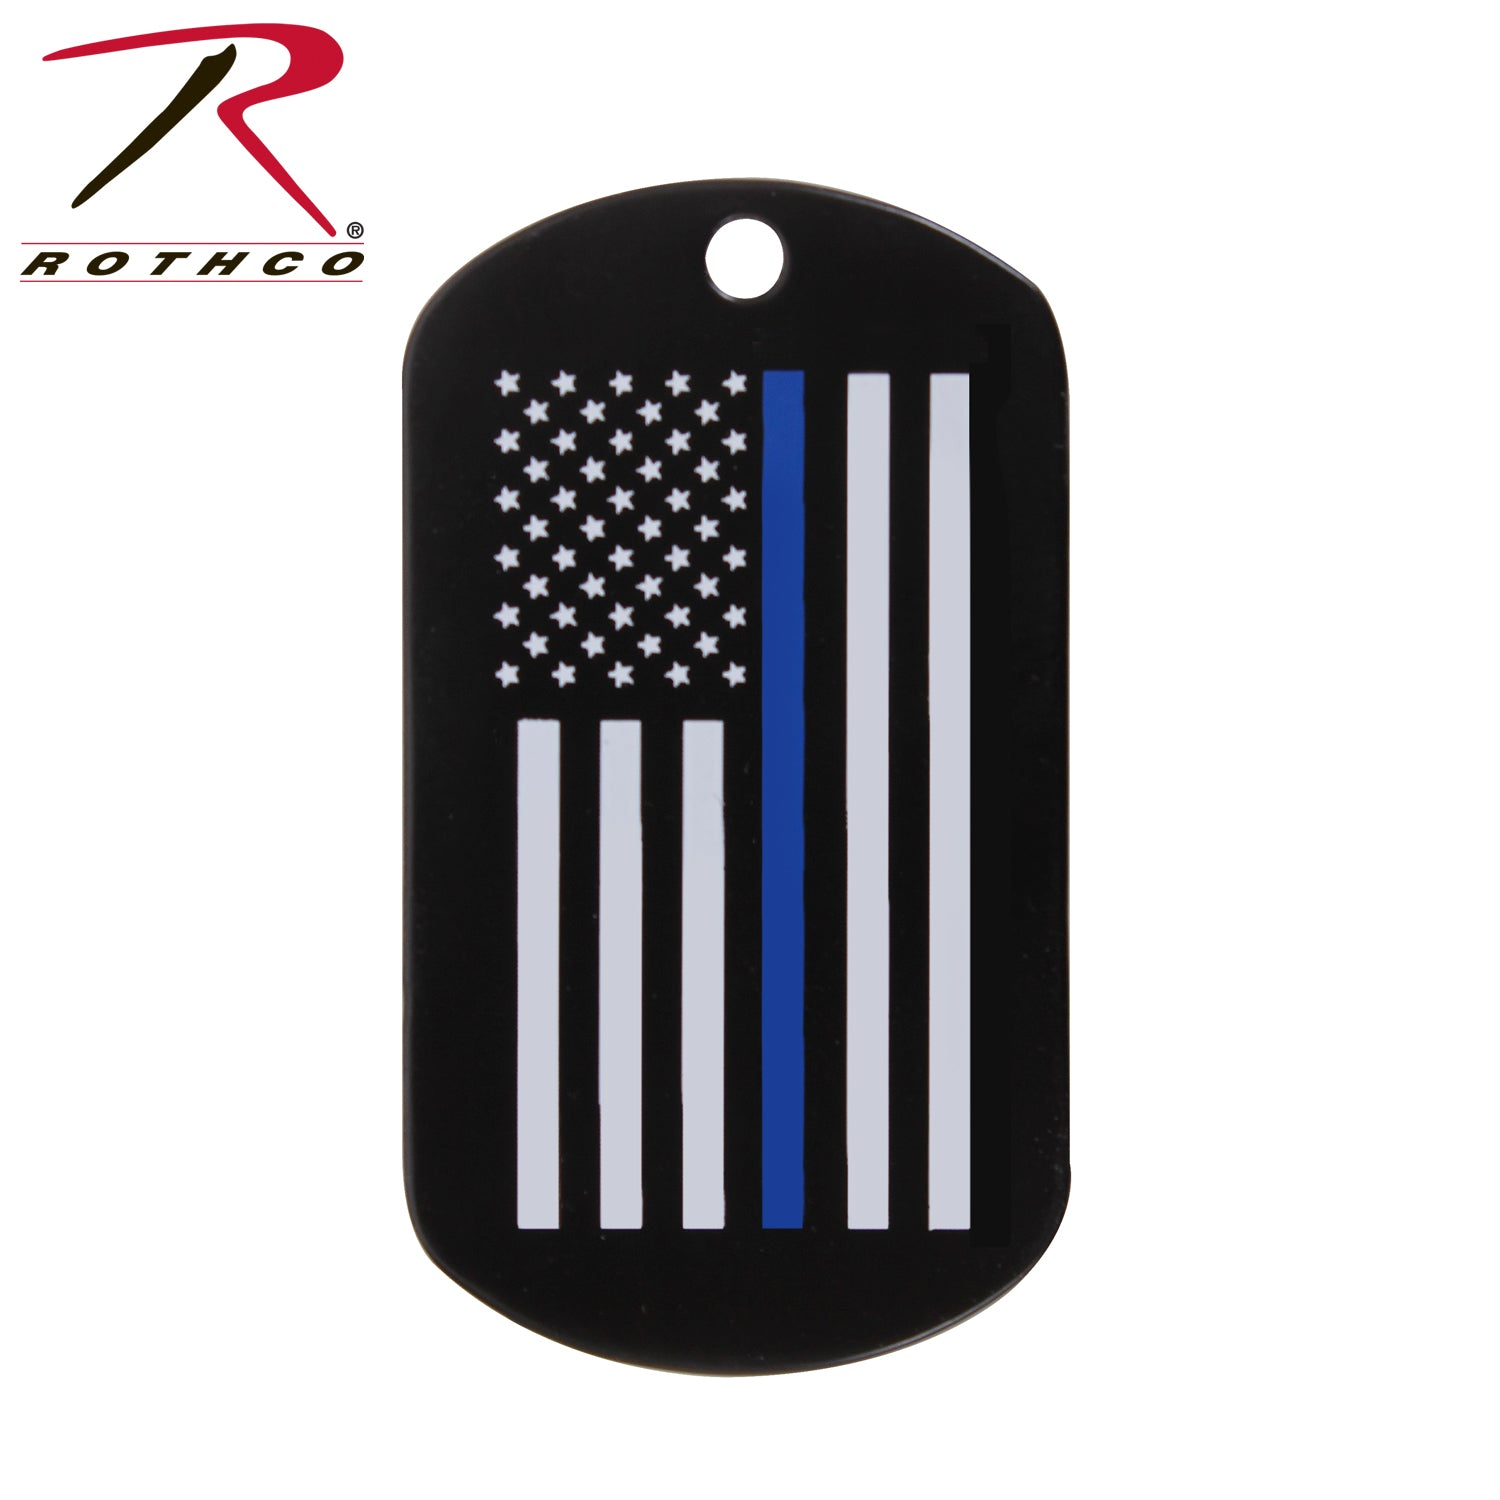 Rothco Thin Blue Line Dog Tag - red-diamond-uniform-police-supply